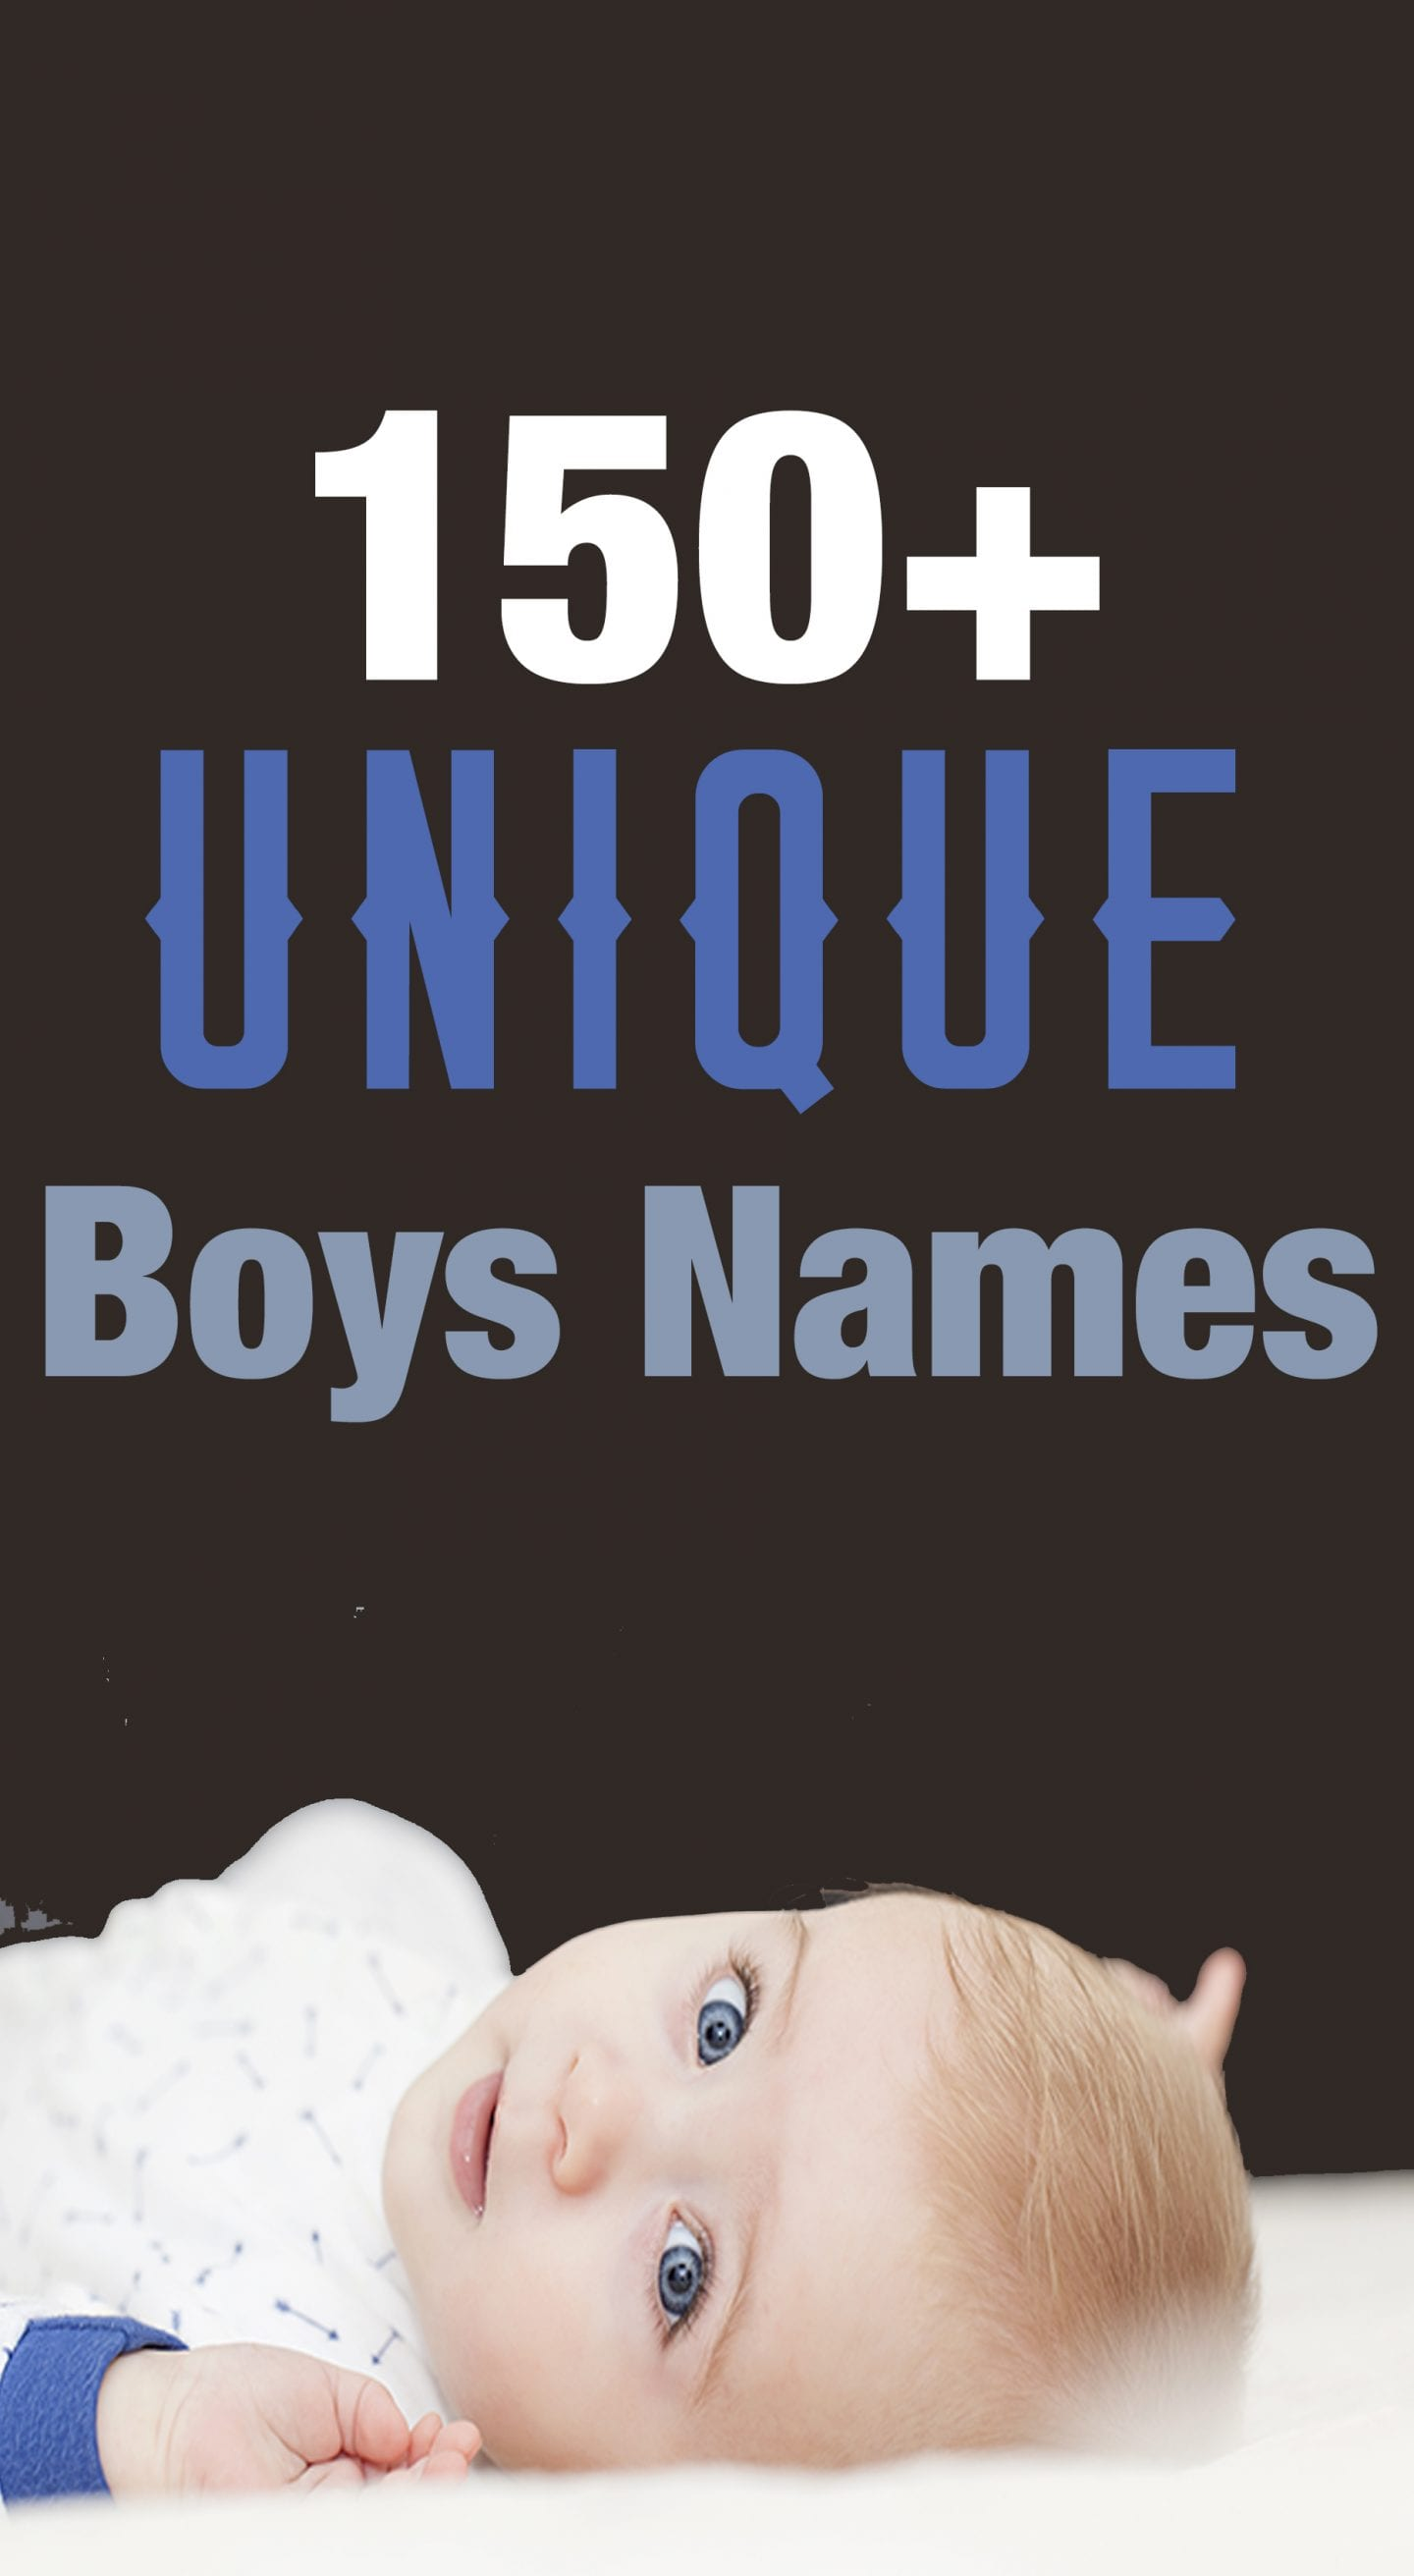 Unique and different boy names. Over 150 names to help you find the perfect name for your little man.